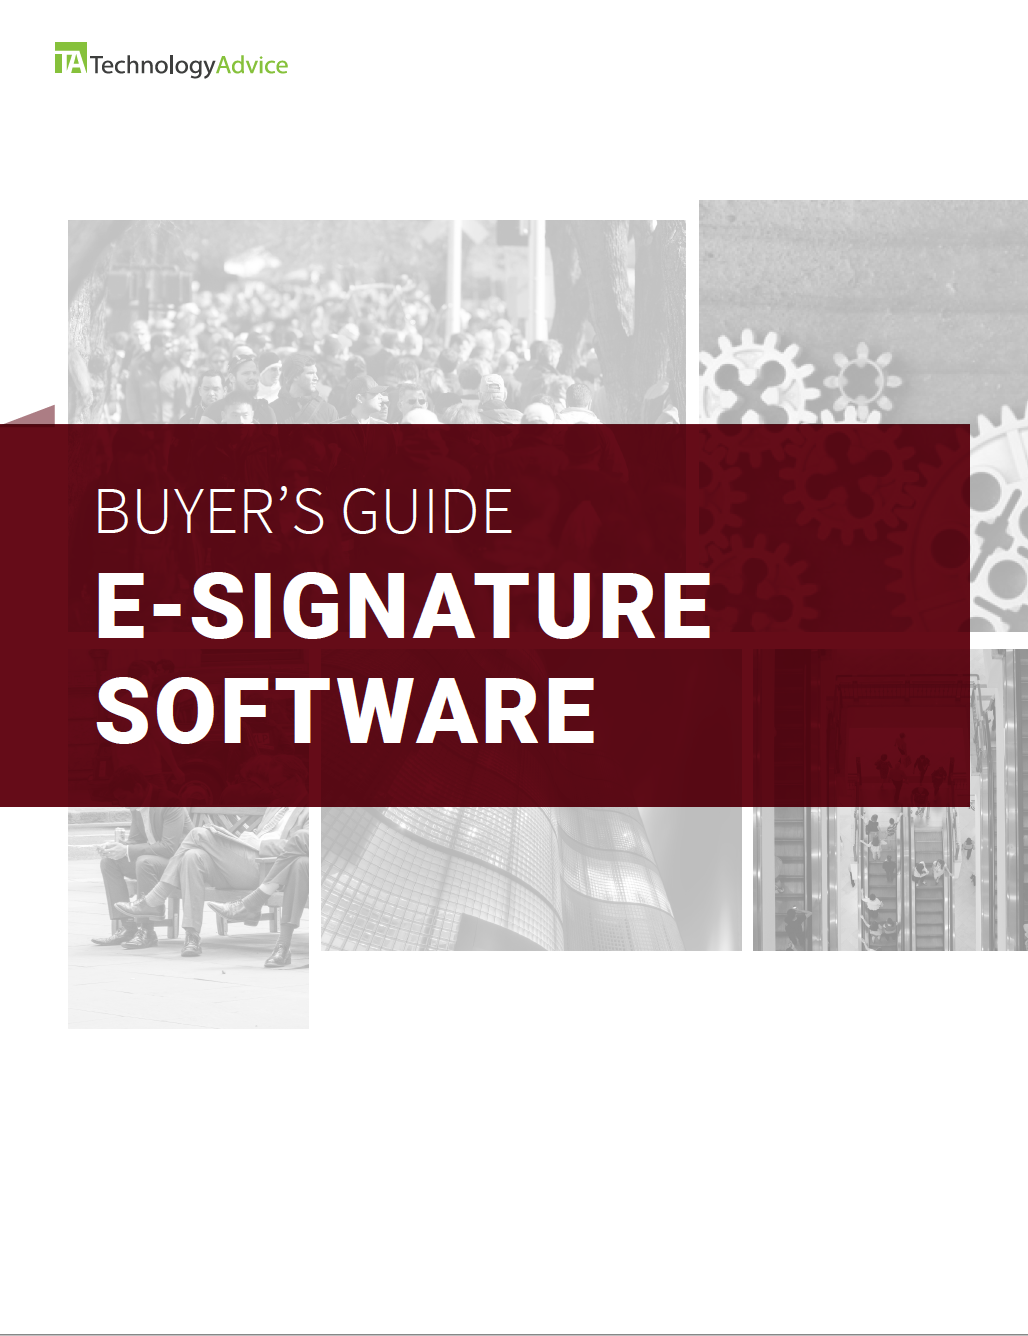 E-Signature Software Buyer's Guide